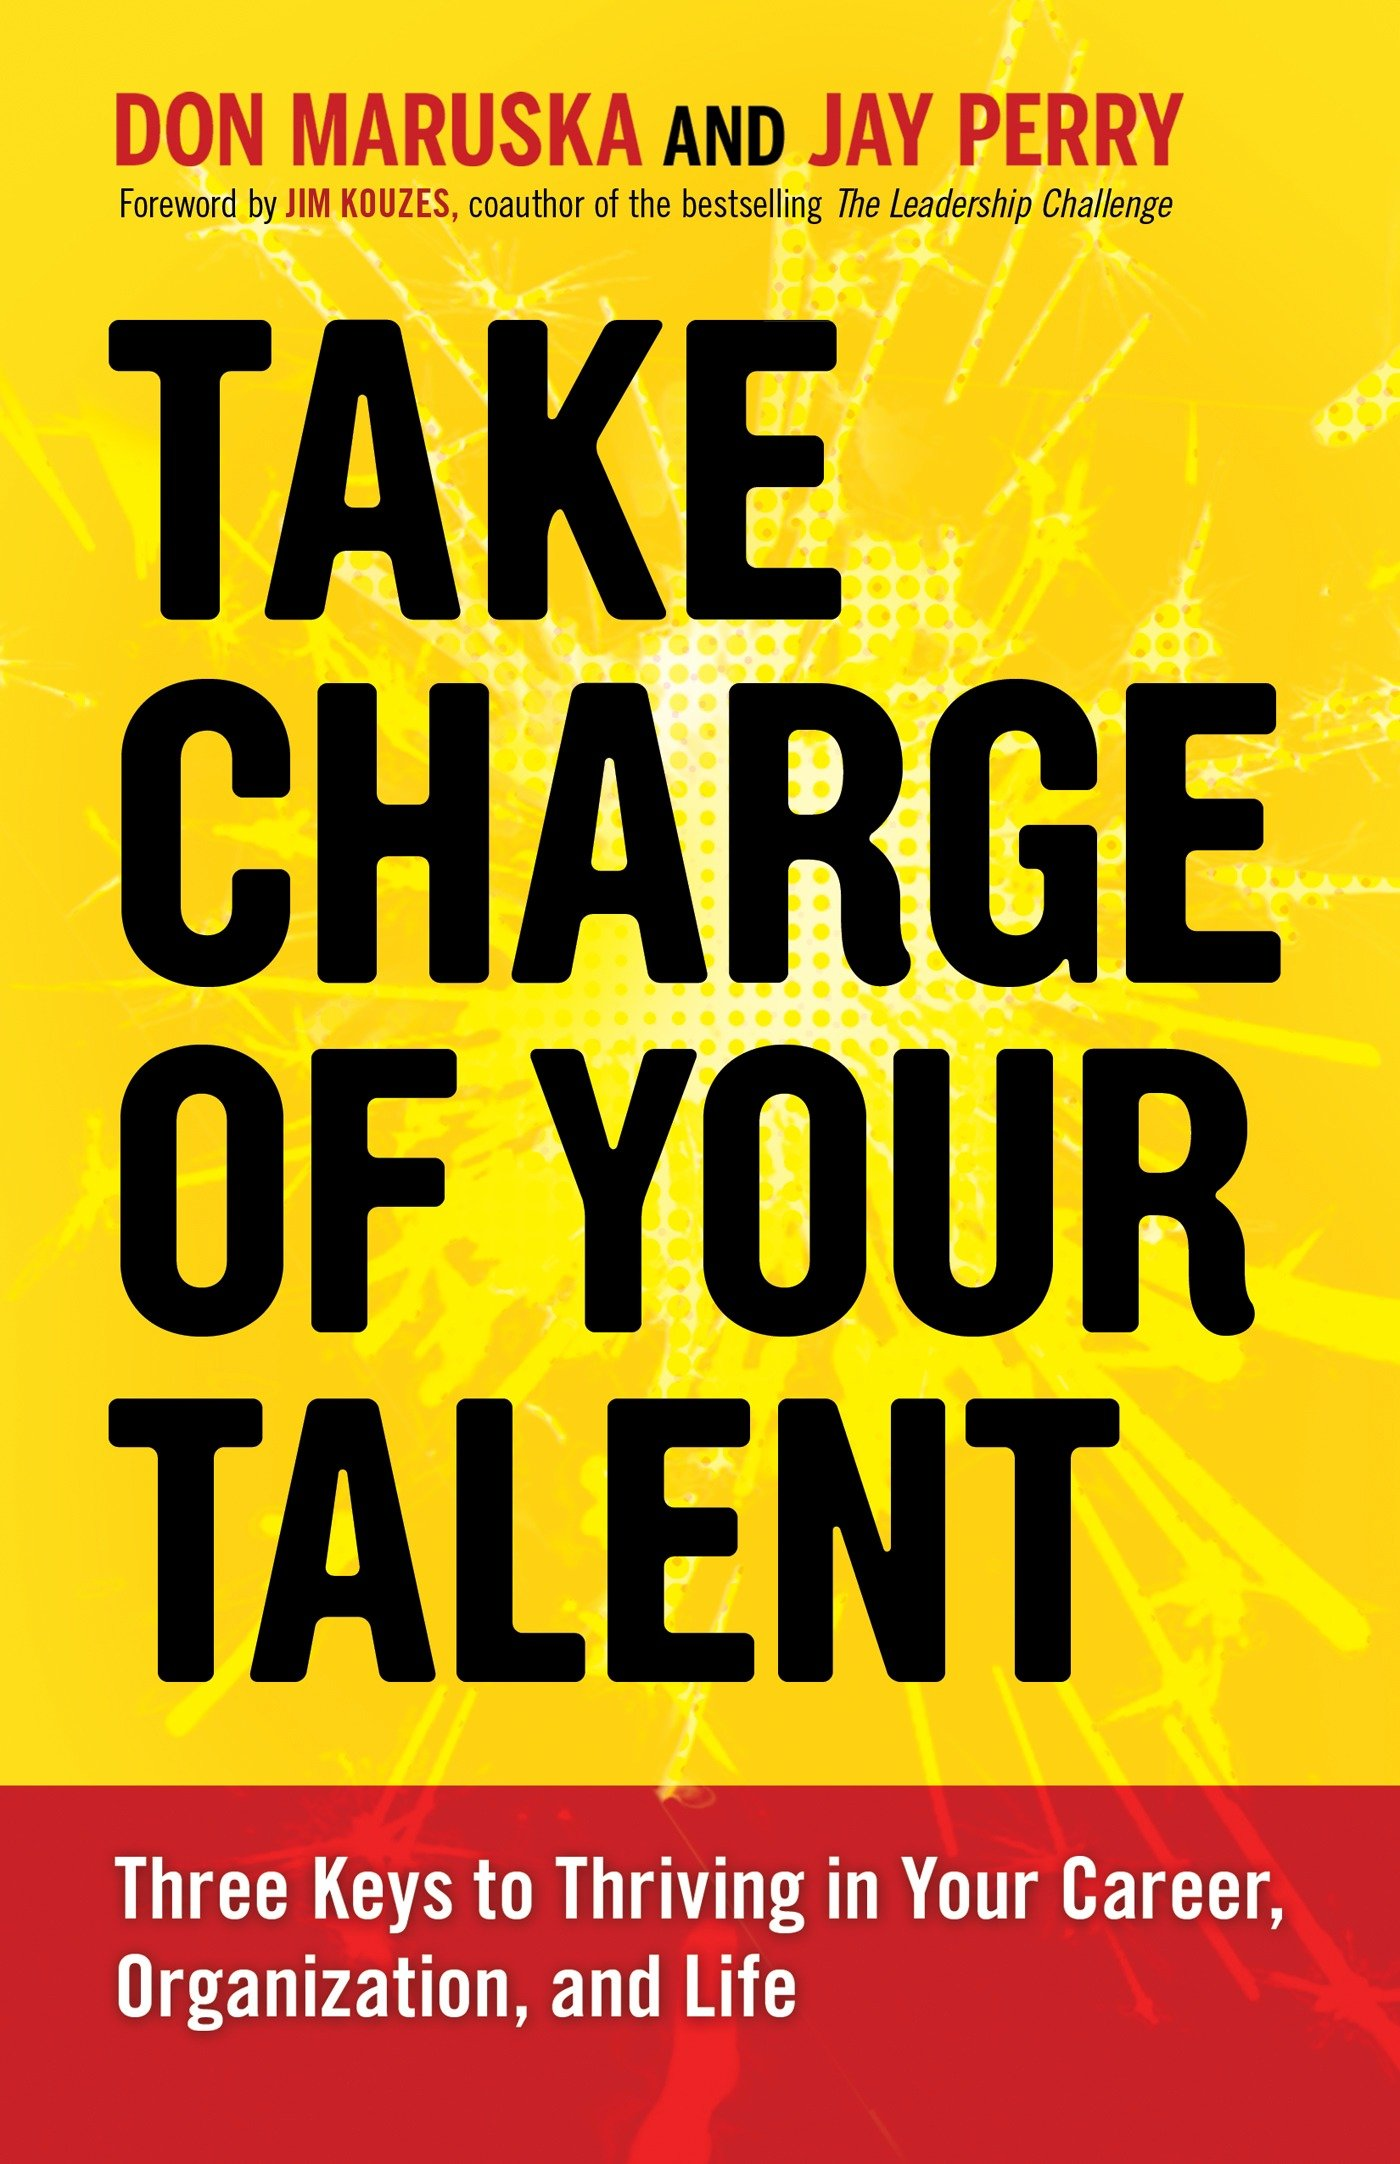 Take Charge Your Talent Organization